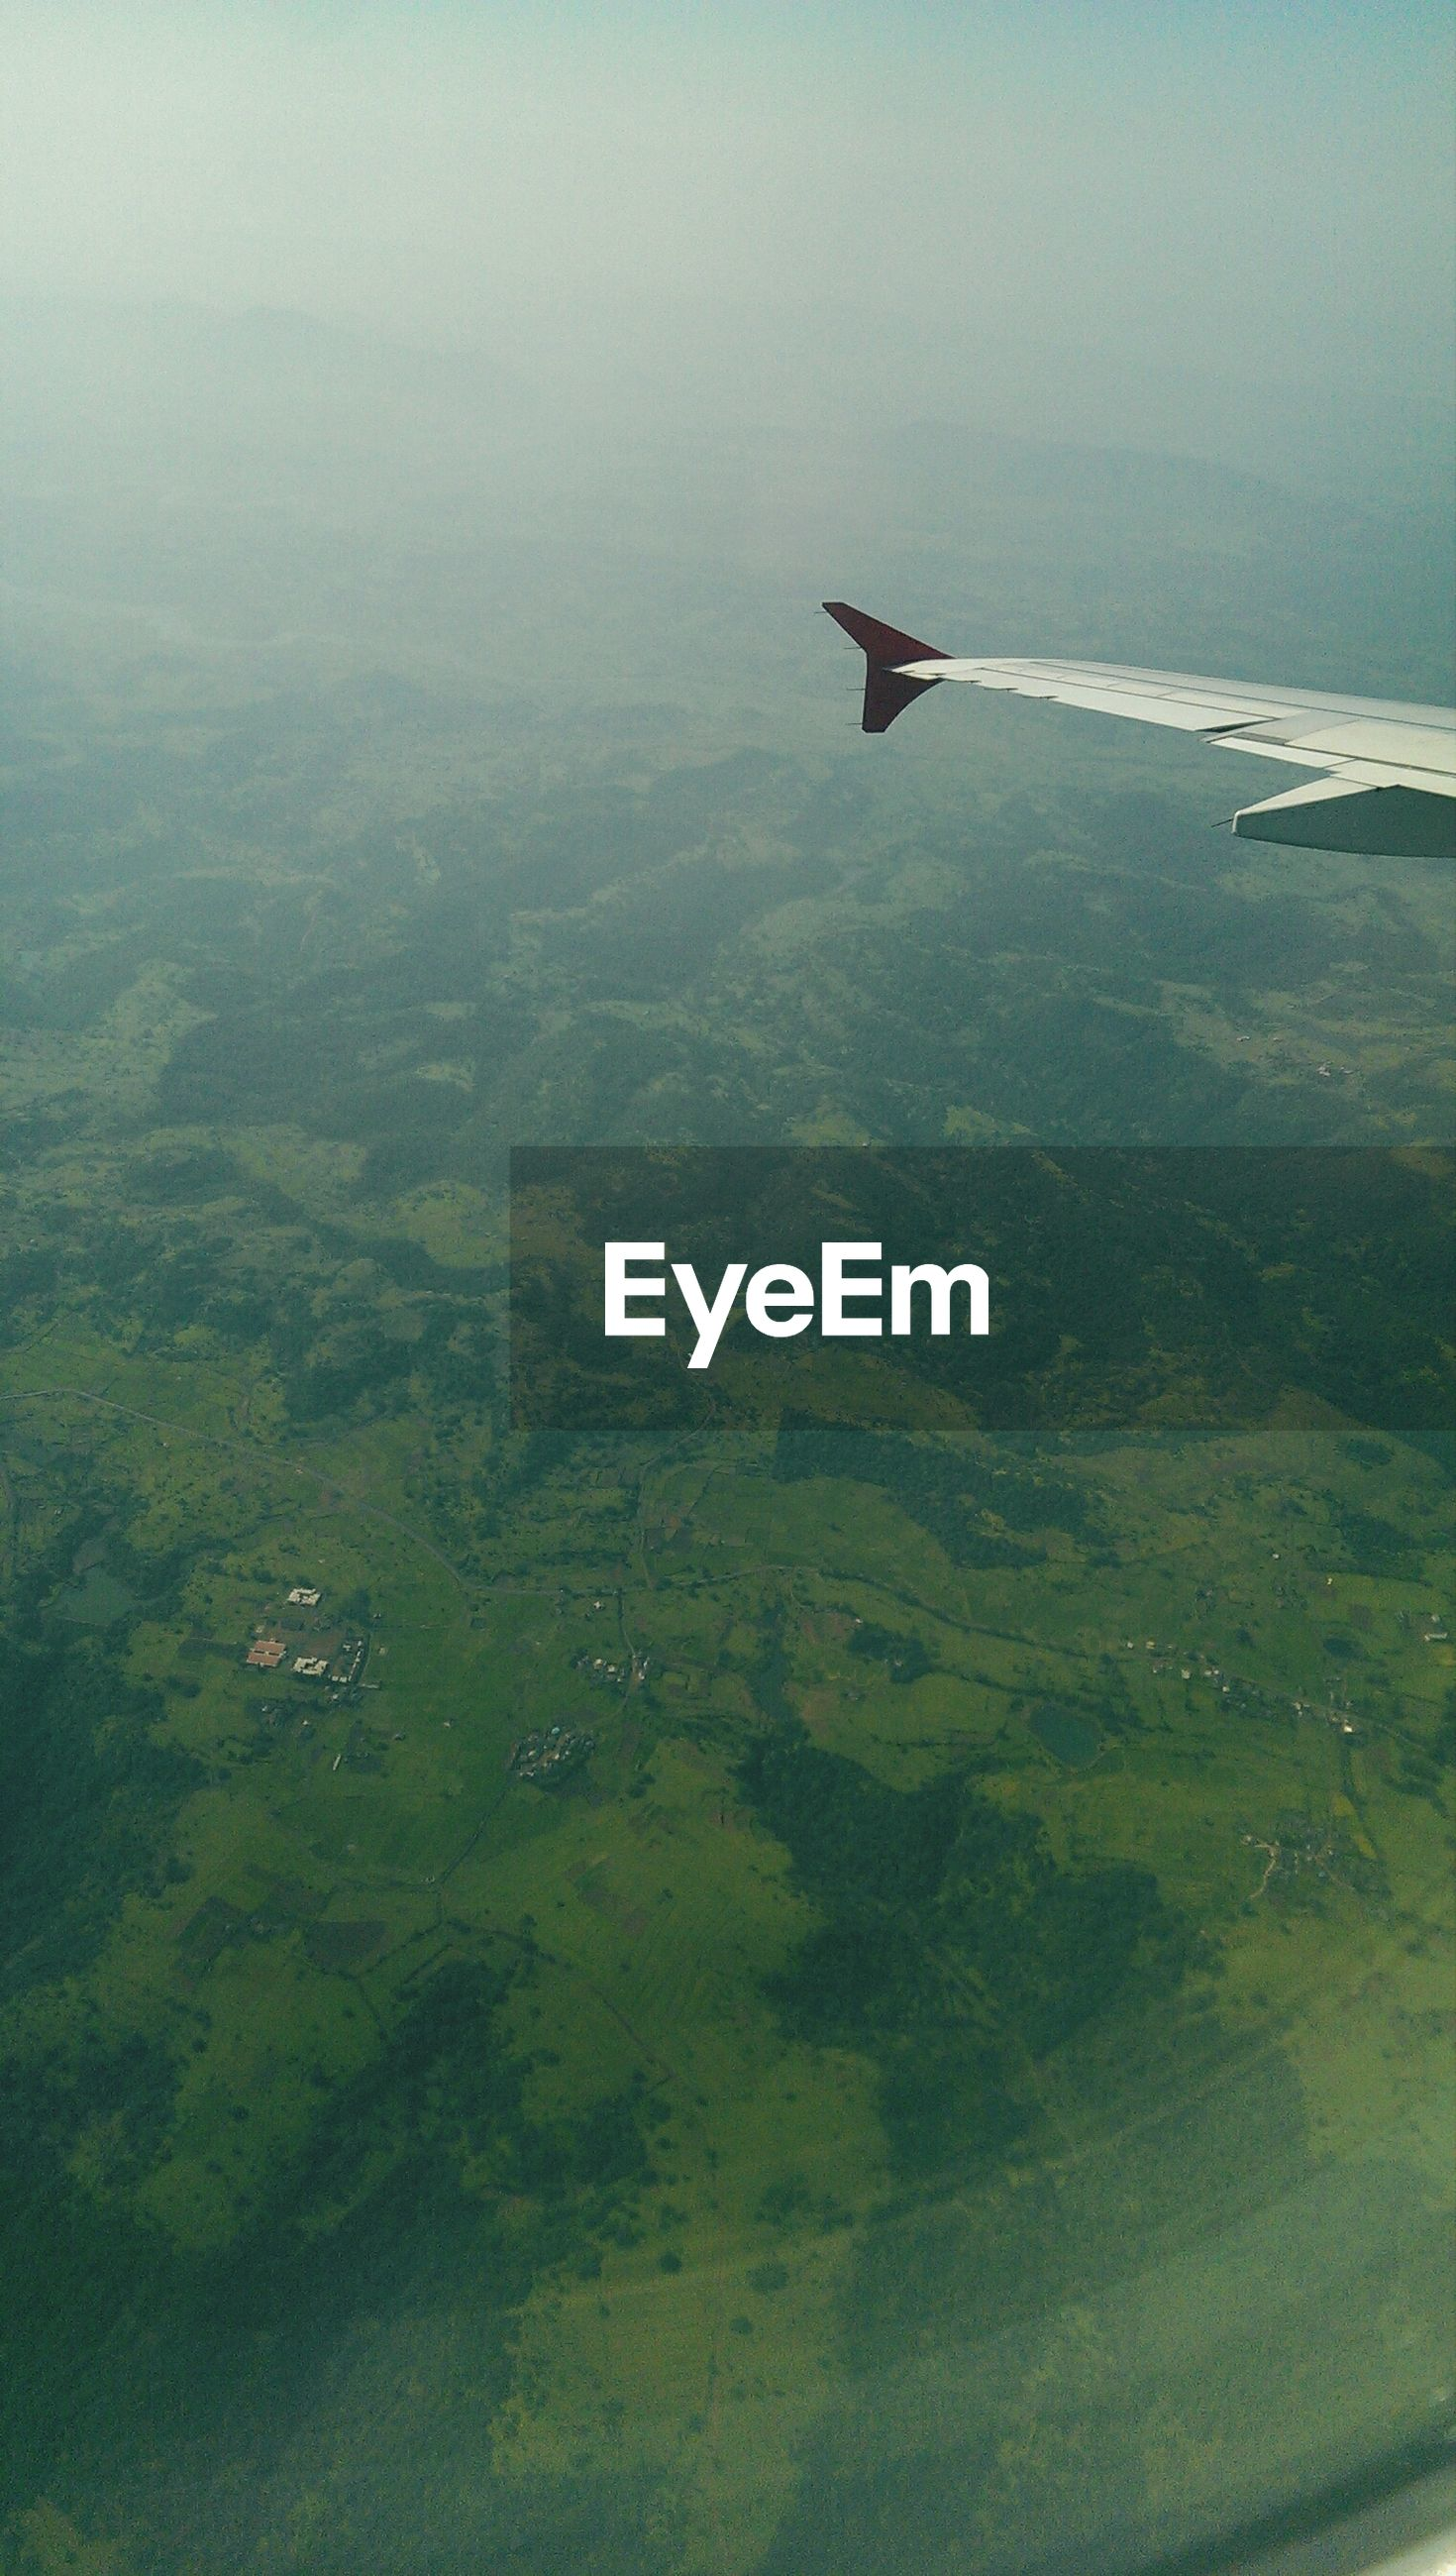 flying, transportation, aerial view, airplane, scenics, mode of transport, water, air vehicle, tranquil scene, beauty in nature, landscape, sea, nature, tranquility, travel, sky, aircraft wing, mountain, high angle view, mid-air